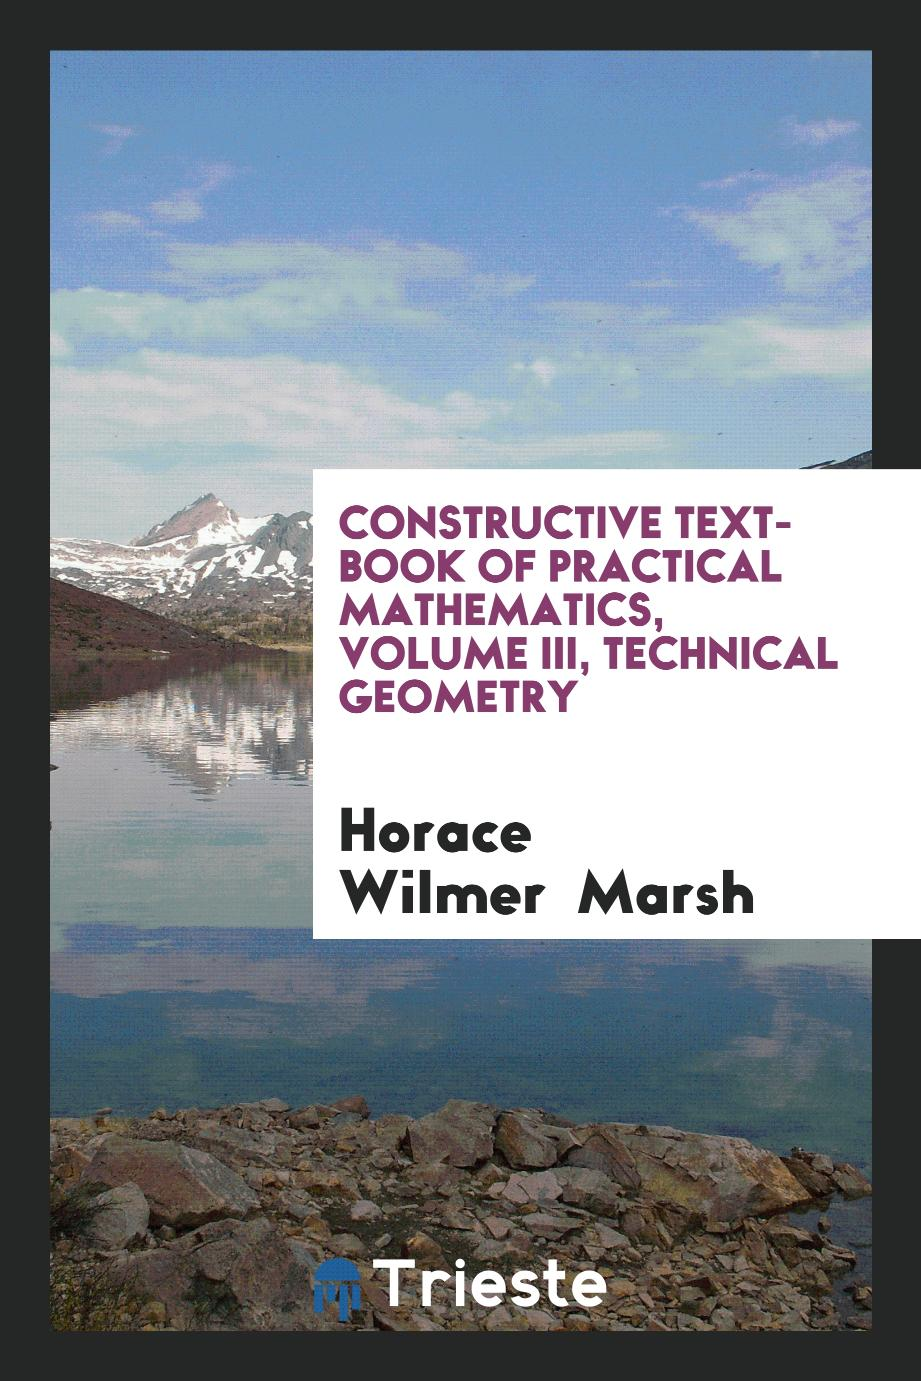 Constructive Text-Book of Practical Mathematics, Volume III, Technical Geometry